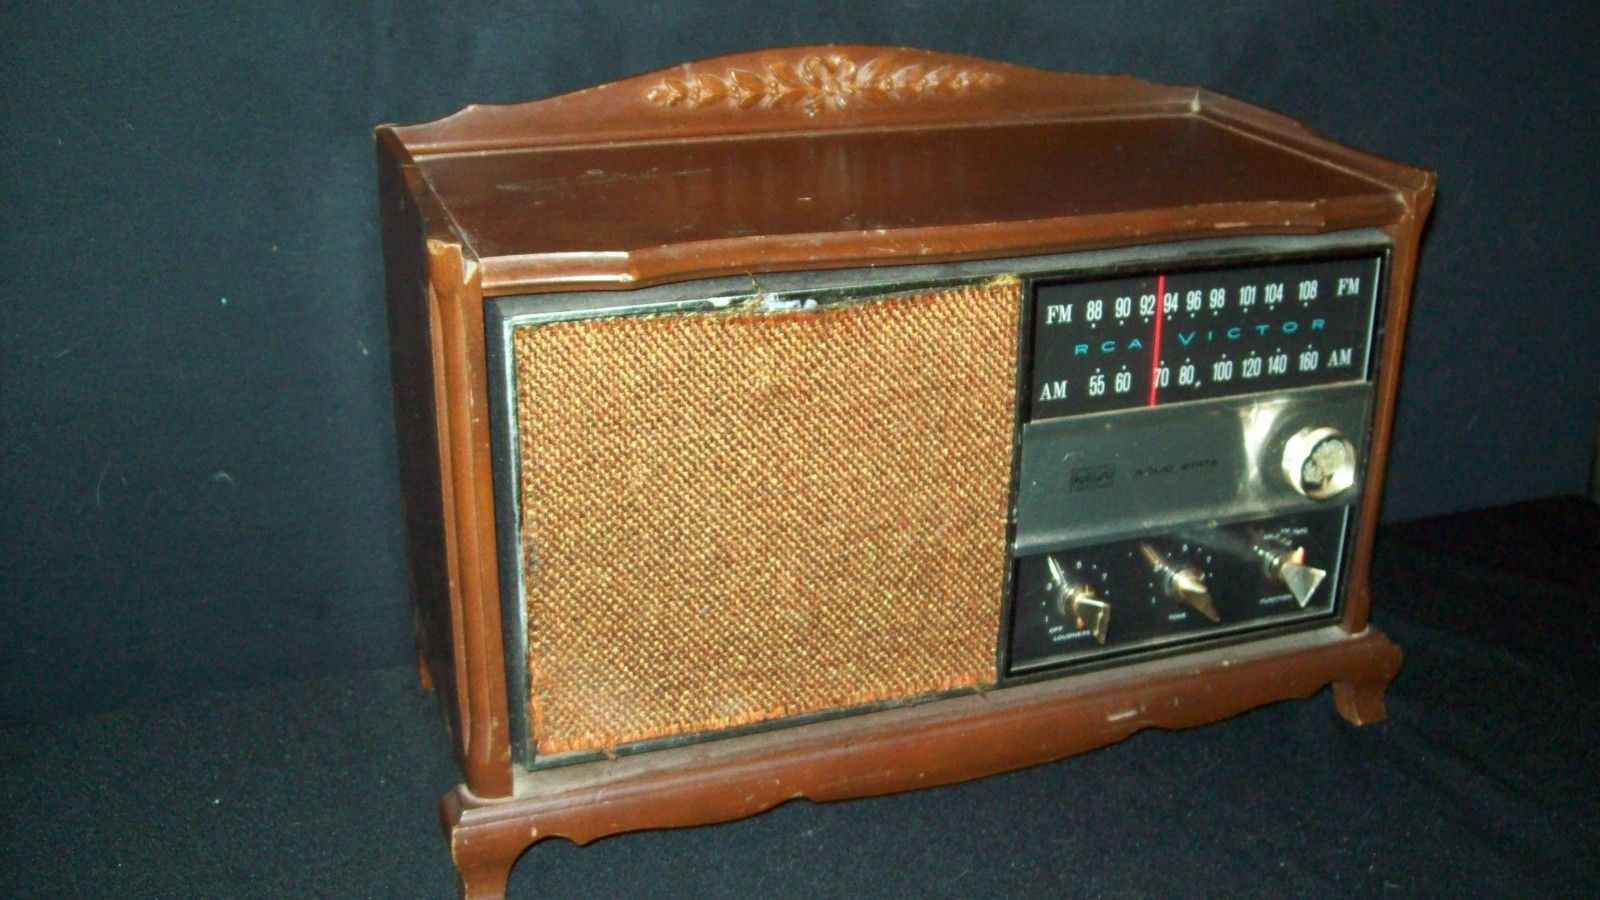 Vintage RCA AM/FM Radio w/Fruitwood Console Model RJC49F